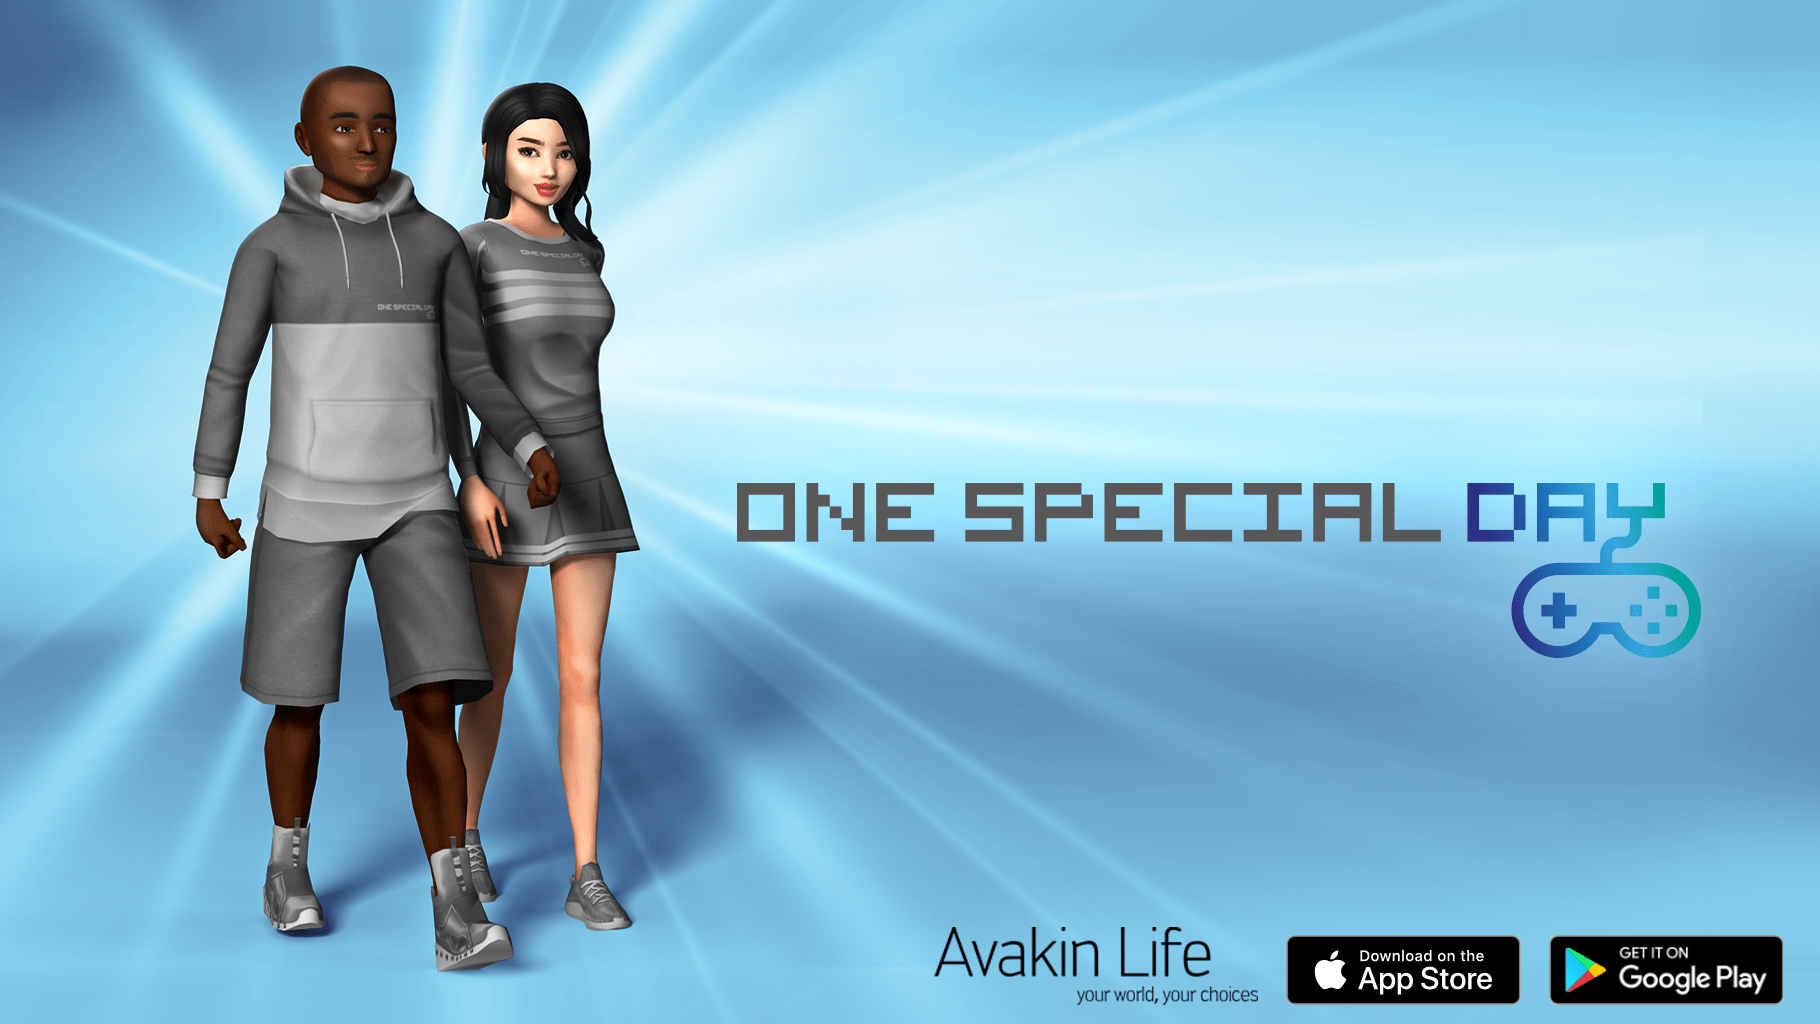 Two Avakin Life characters against a One Special Day background